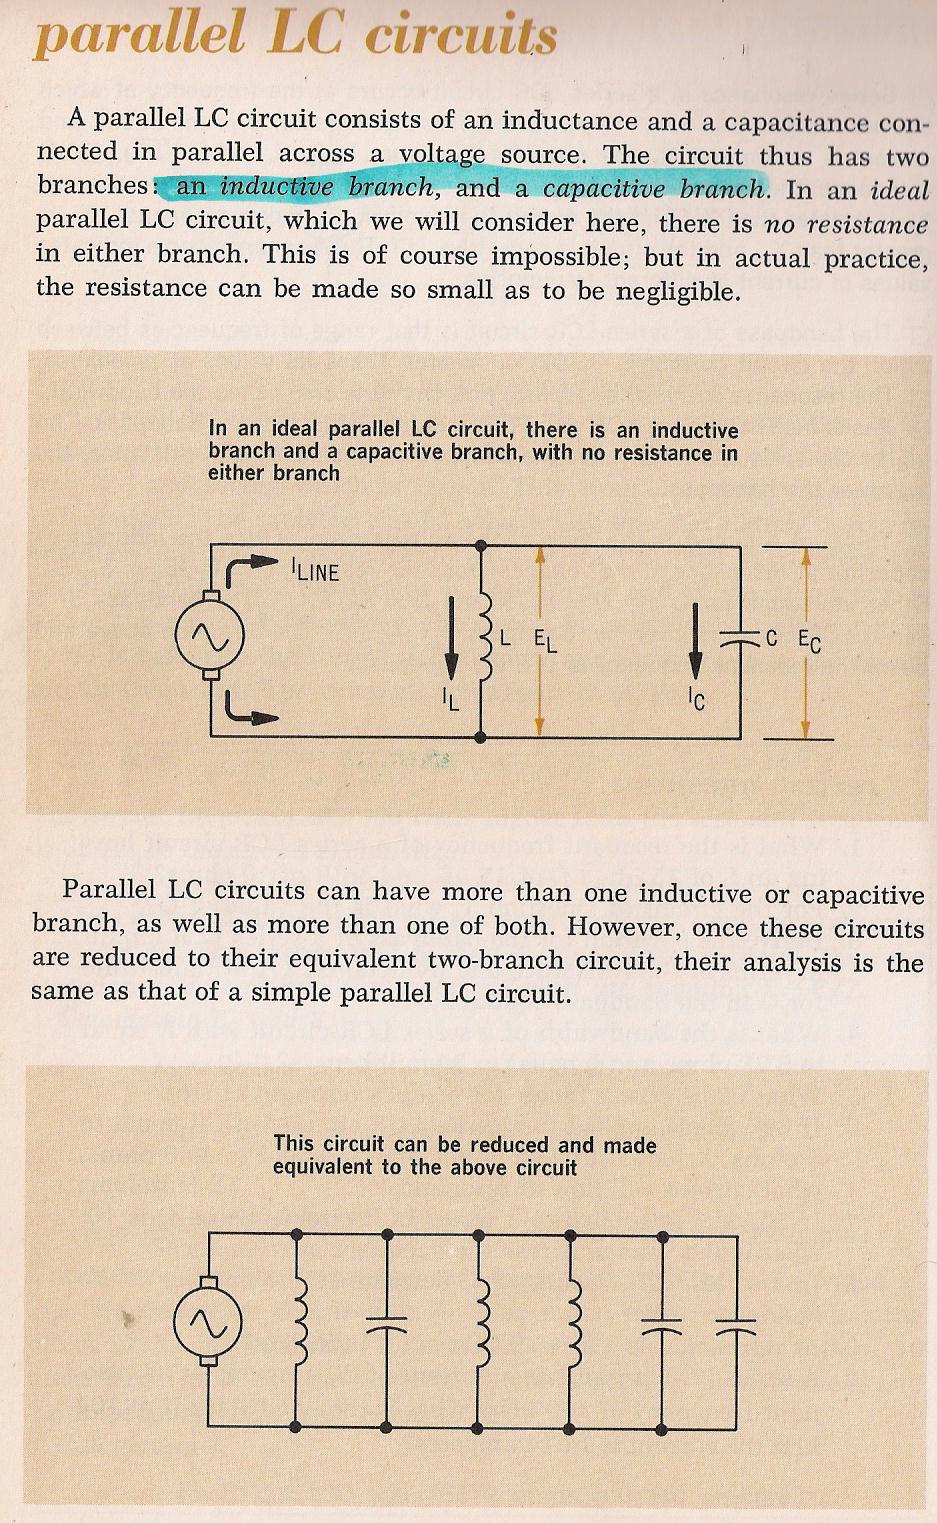 Rlc Circuits Parallel Circuit Resistance As Well Series And 062 Lc By Larry E Gugle K4rfe